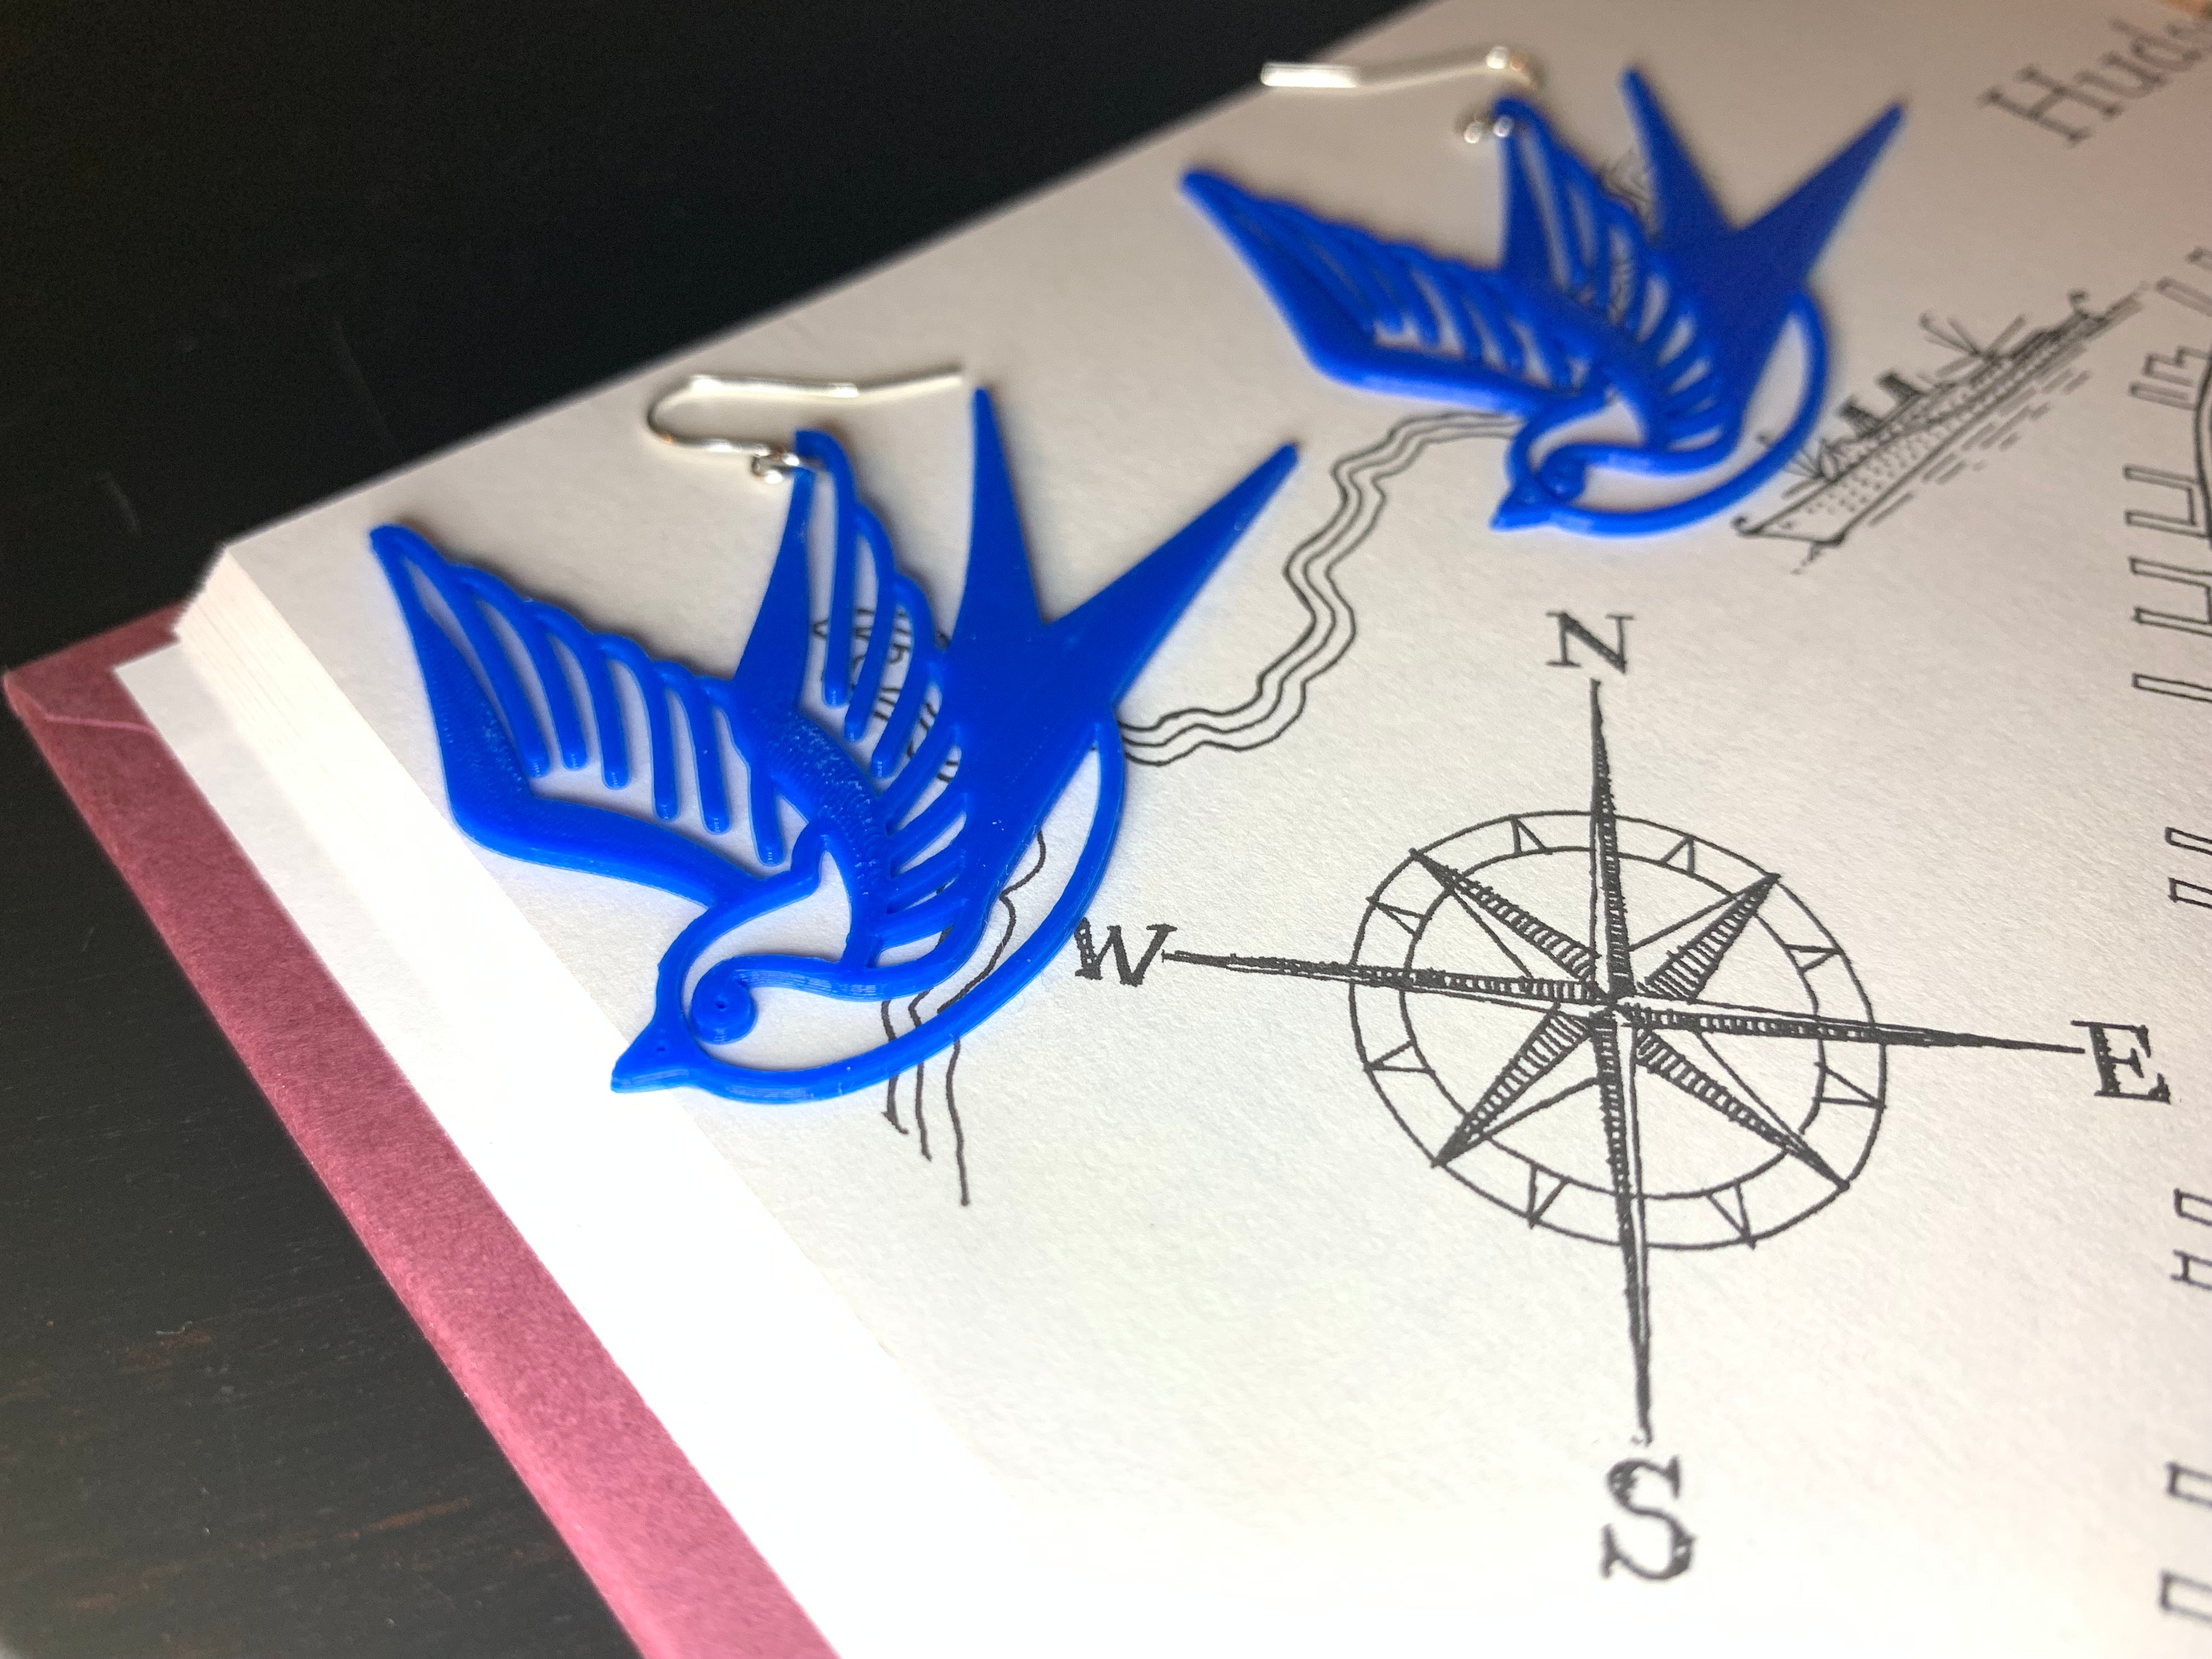 Laying on a book with a hand drawn compass are two bright cobalt blue swallow R+D 3D printed earrings. The shape of these birds is reminiscent of classic sailor tattoos.